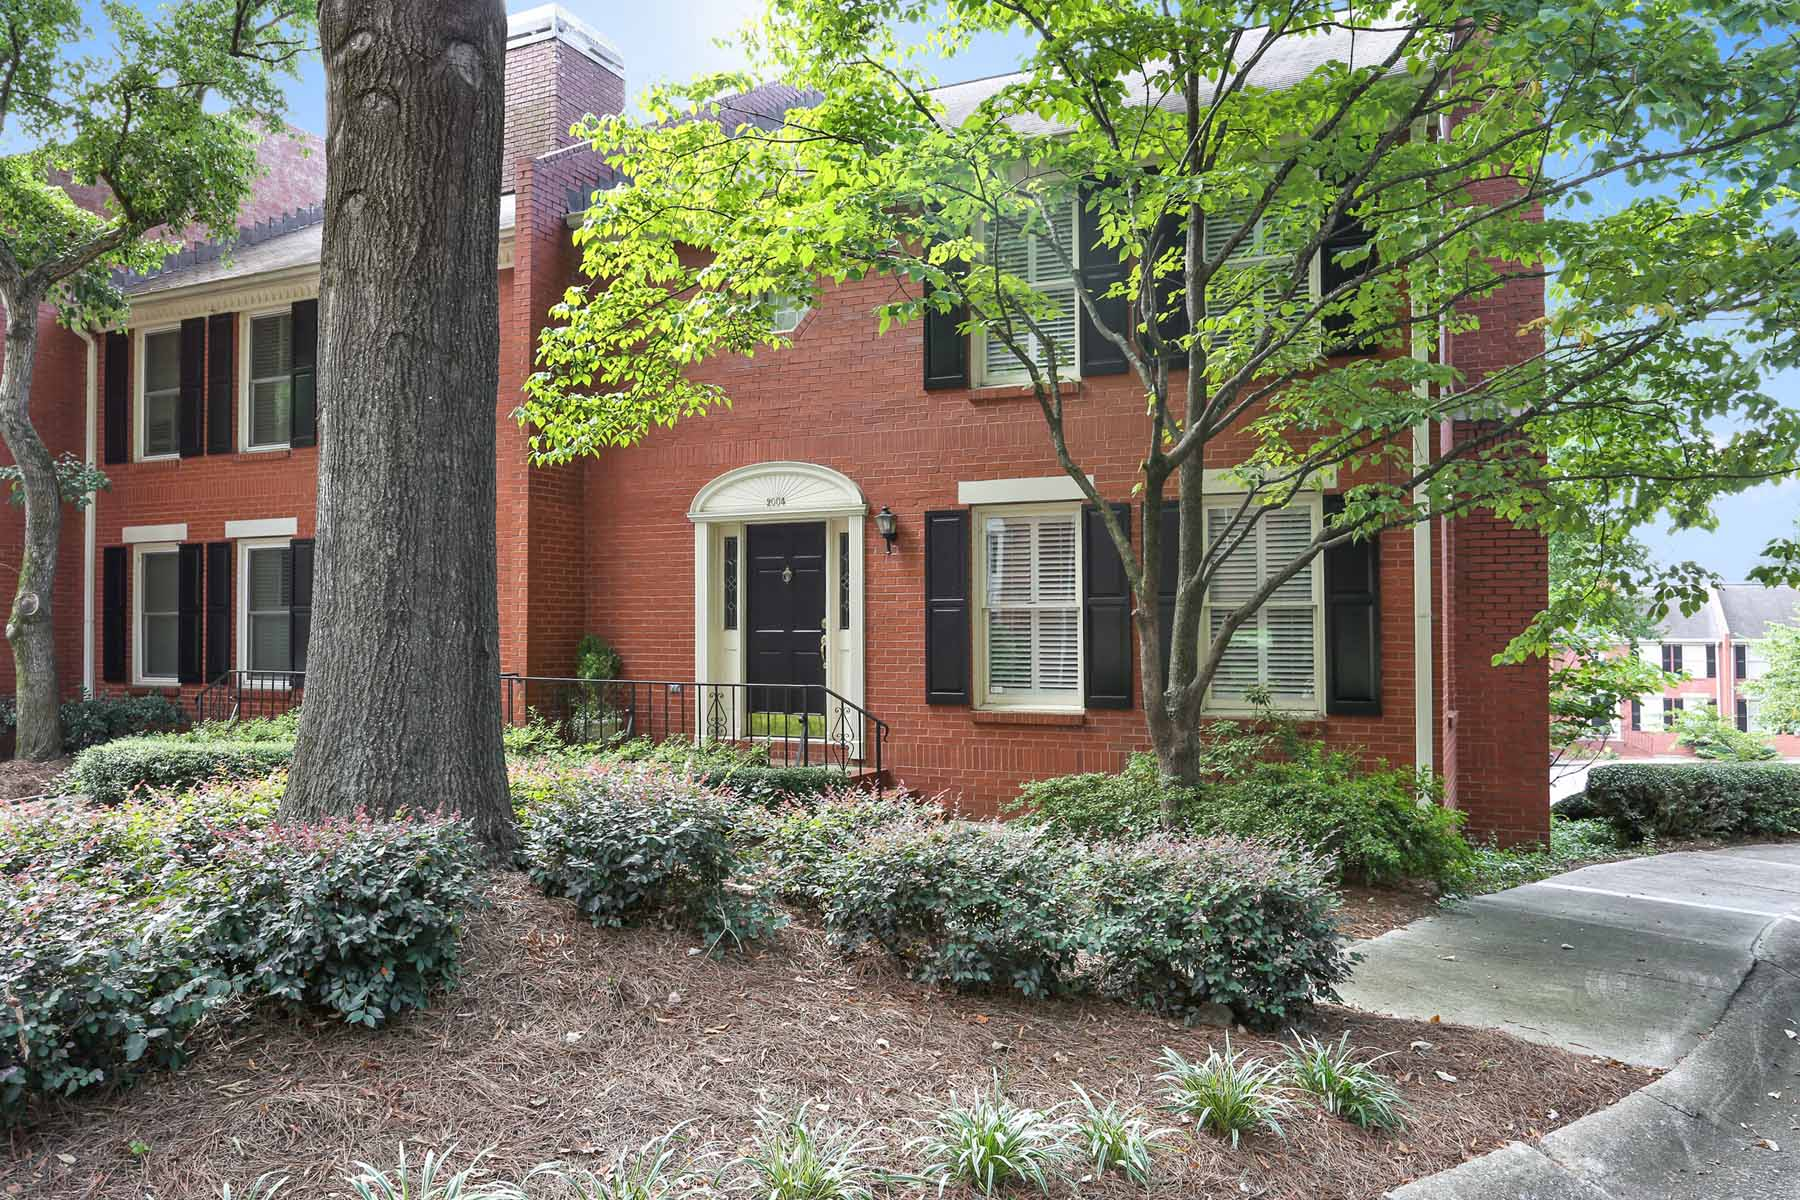 联栋屋 为 销售 在 Tastefully renovated traditional end unit townhome in stellar location. 2004 Defoors Mill Drive NW Atlanta, 乔治亚州 30318 美国